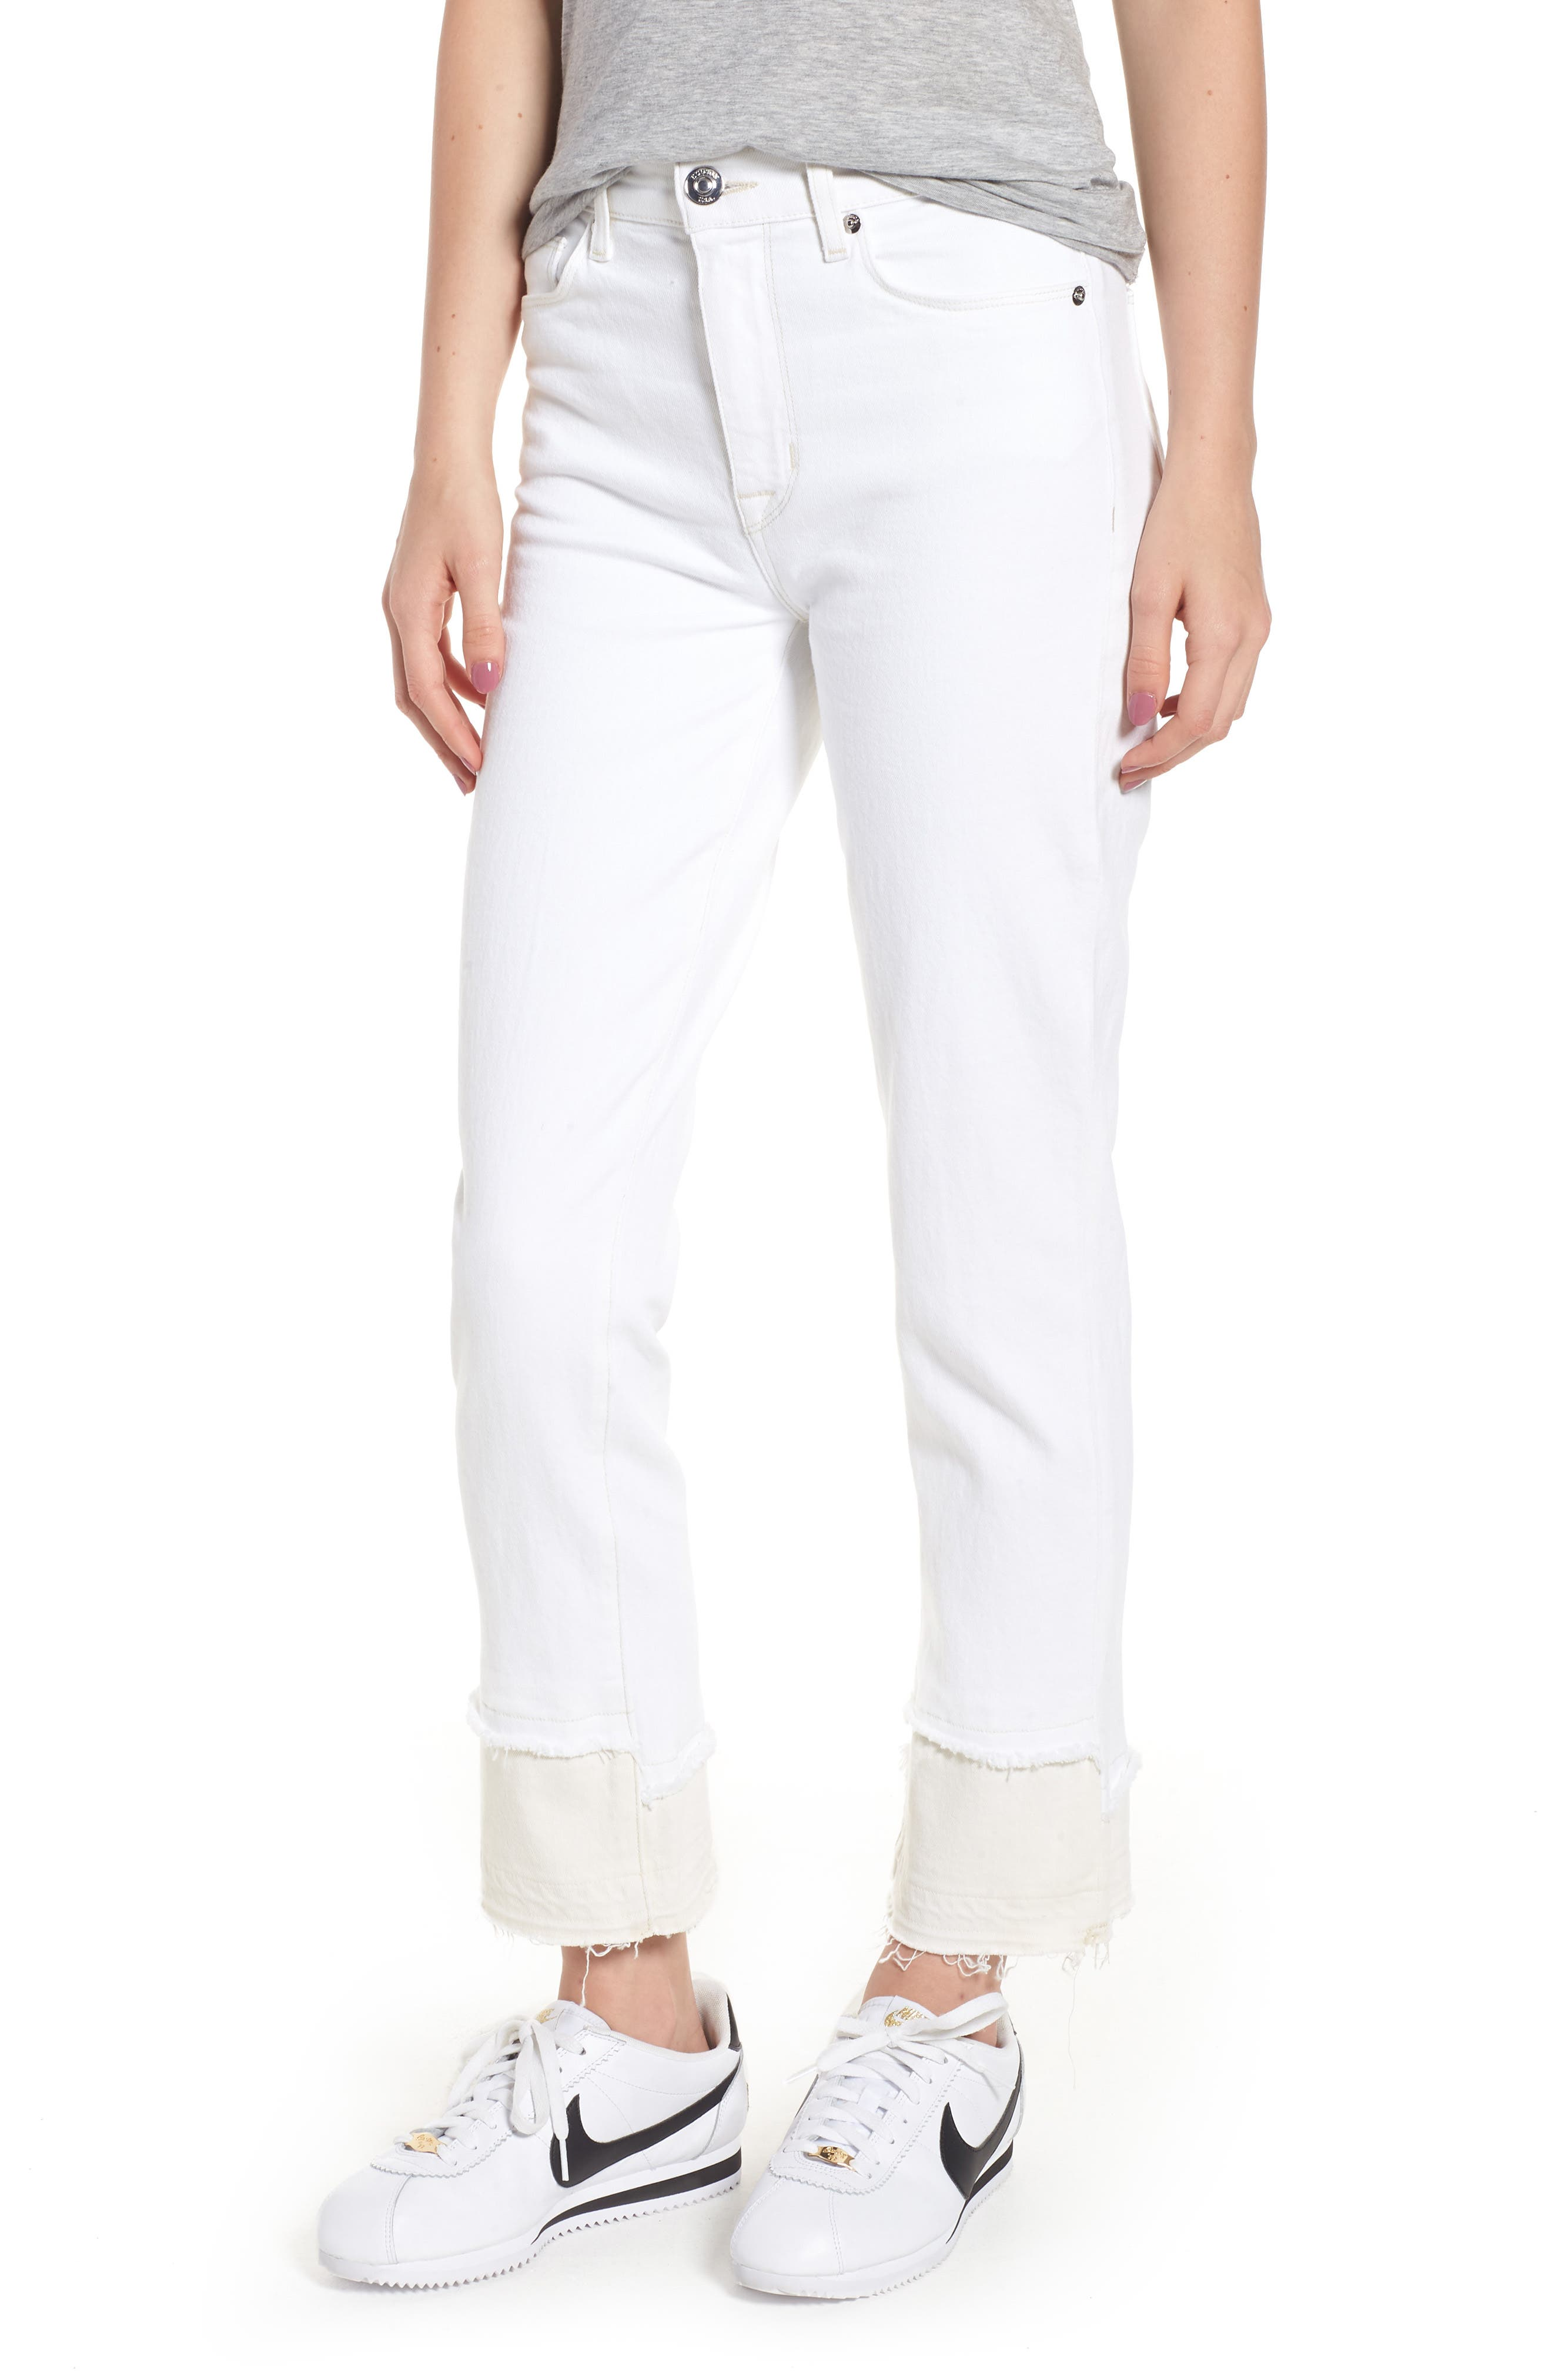 Zoeey High Waist Crop Straight Leg Jeans,                         Main,                         color, Stepped White